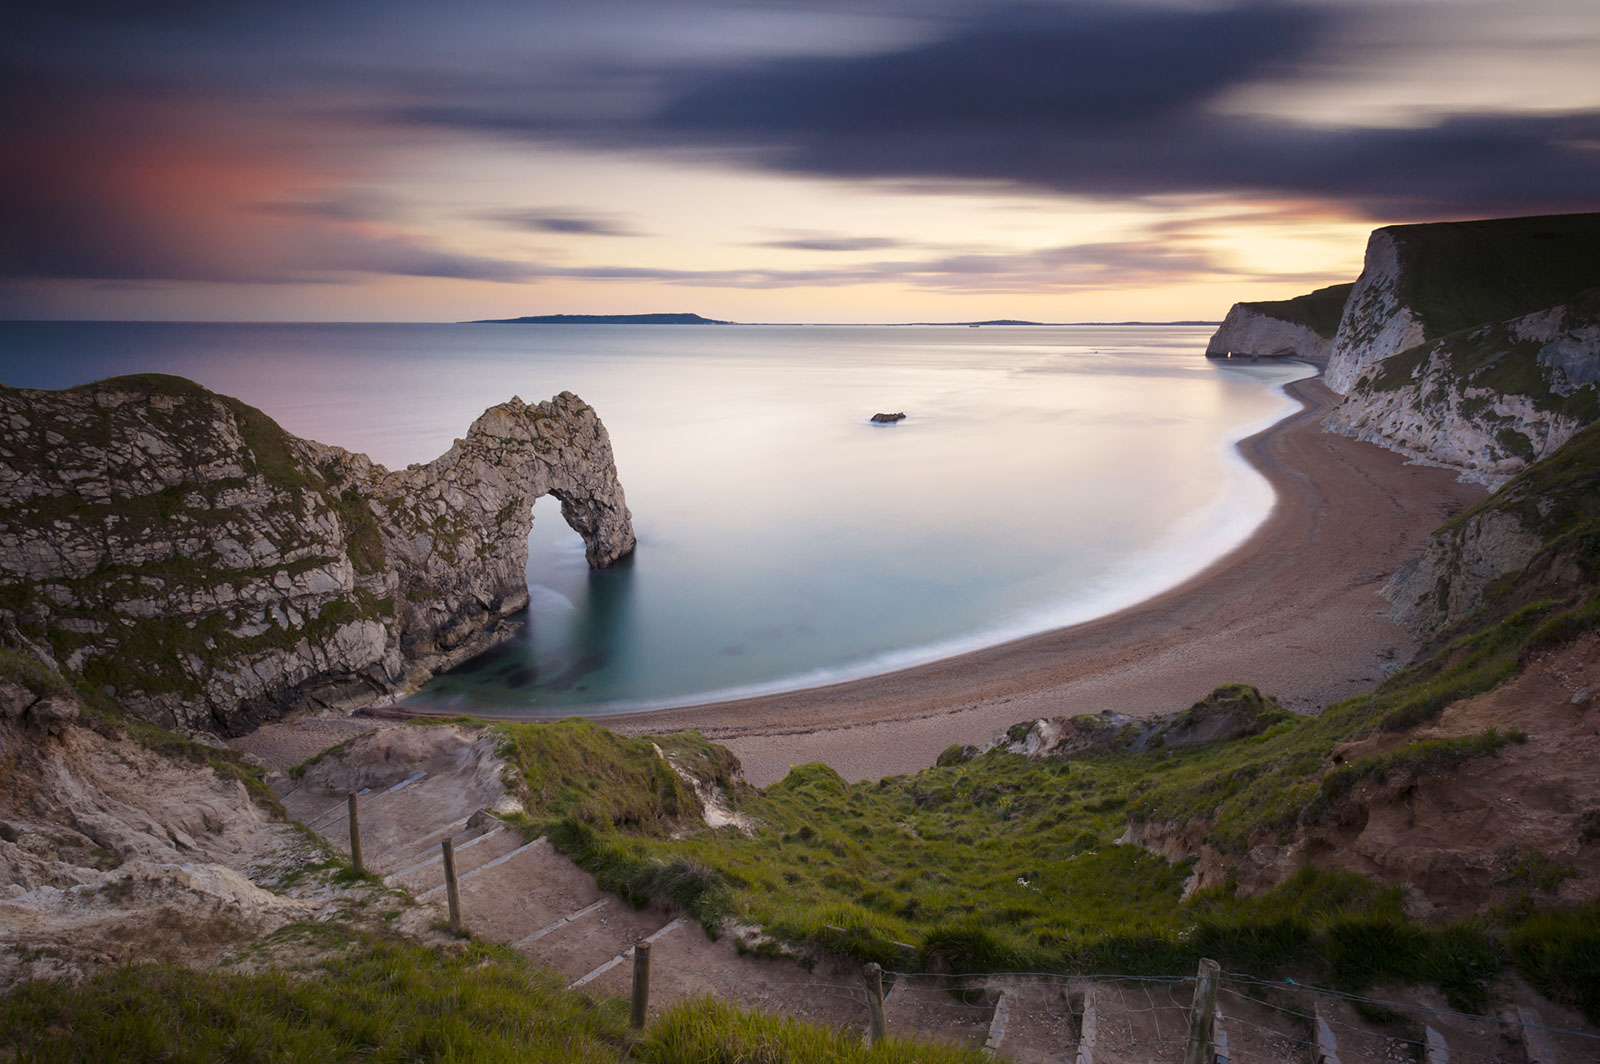 landscape photography locations in the uk